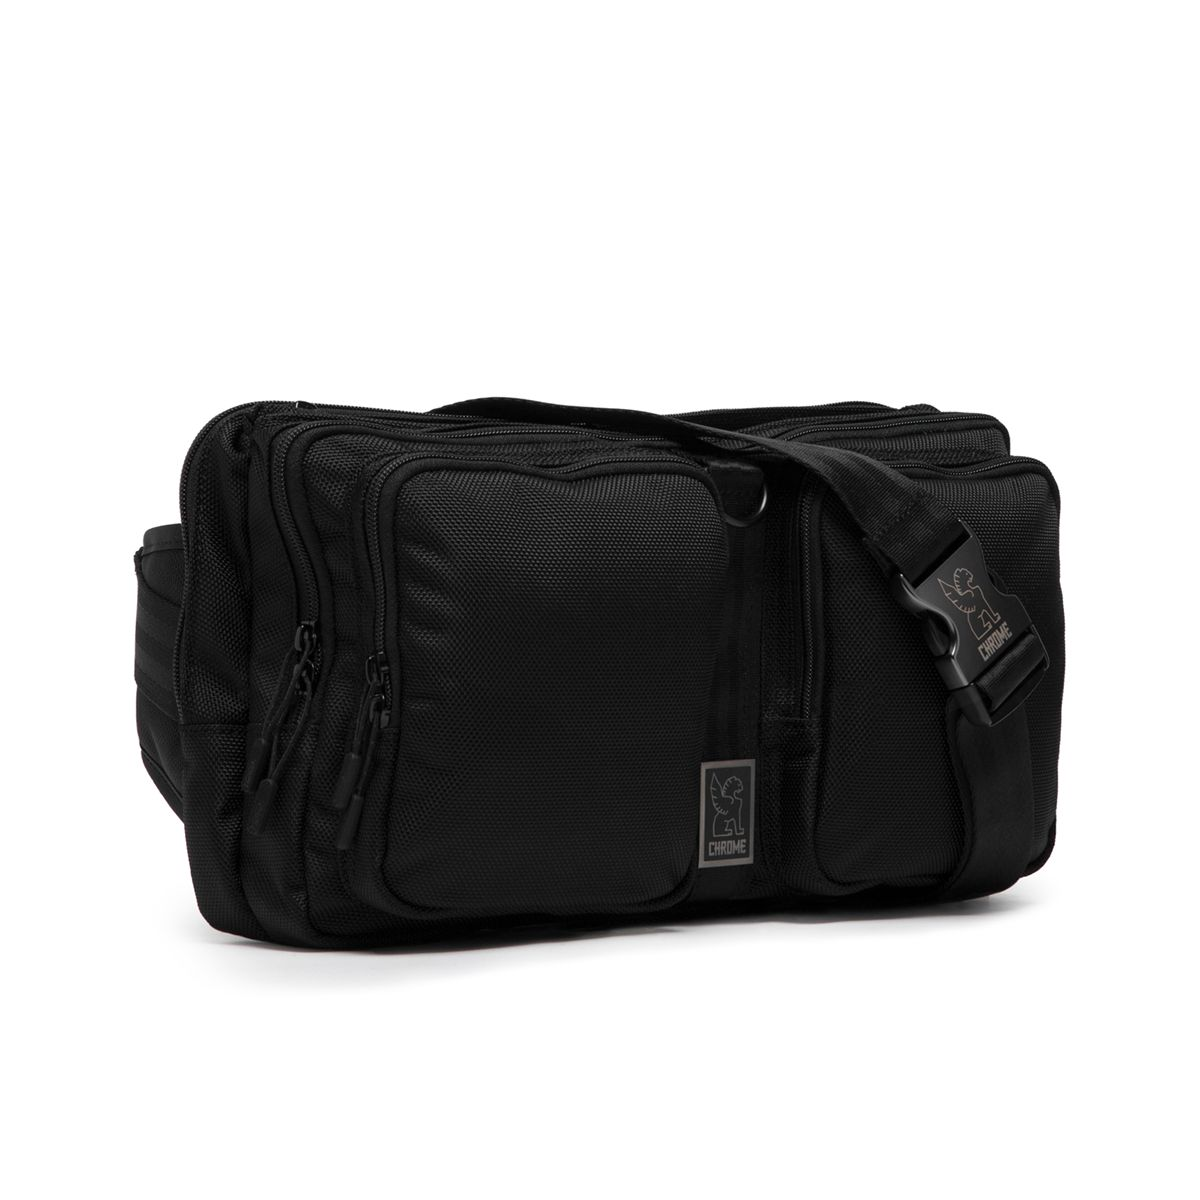 MXD SEGMENT SLING BAG Messenger Bag